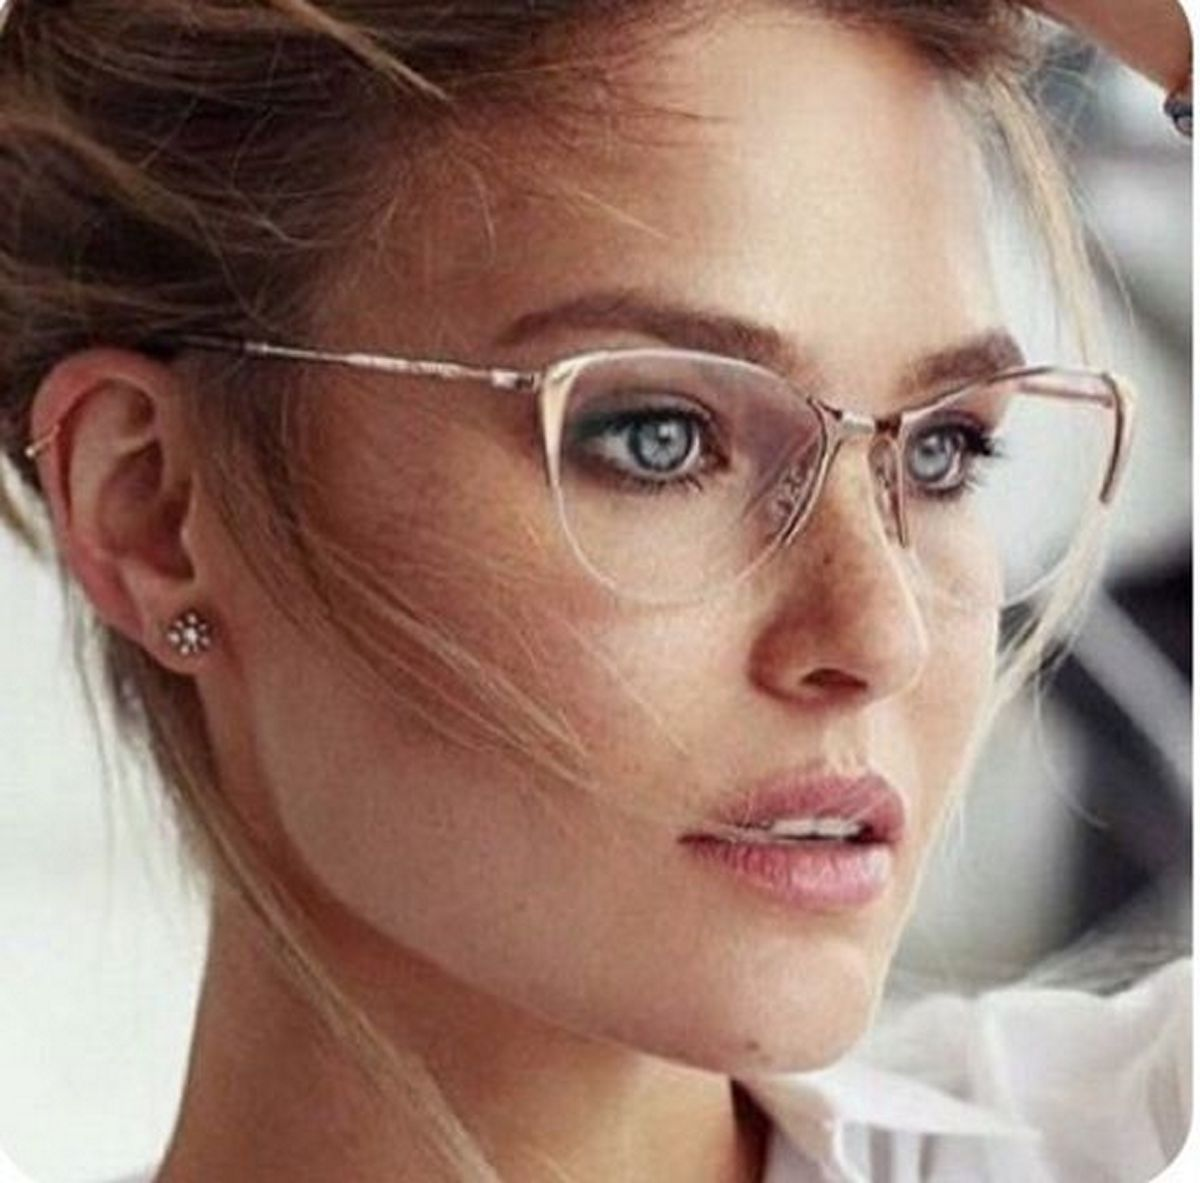 dc8a330711 Clear Glasses Frame For Women s Fashion Ideas  Transparent  Eyeglass ...